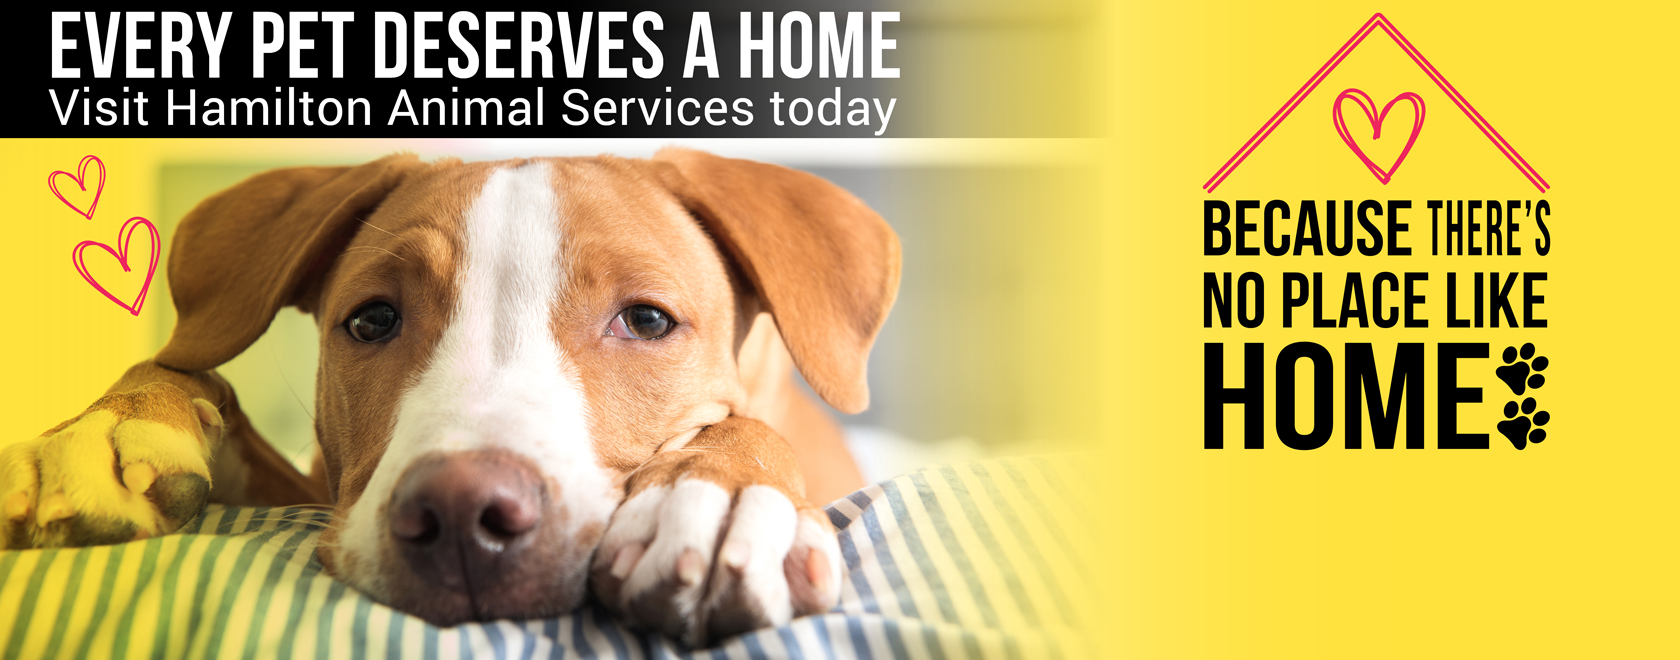 Animal House Back Bar - animal-services-pet-adoption-campaign-banner-july2018_Top Animal House Back Bar - animal-services-pet-adoption-campaign-banner-july2018  Snapshot_304341.png